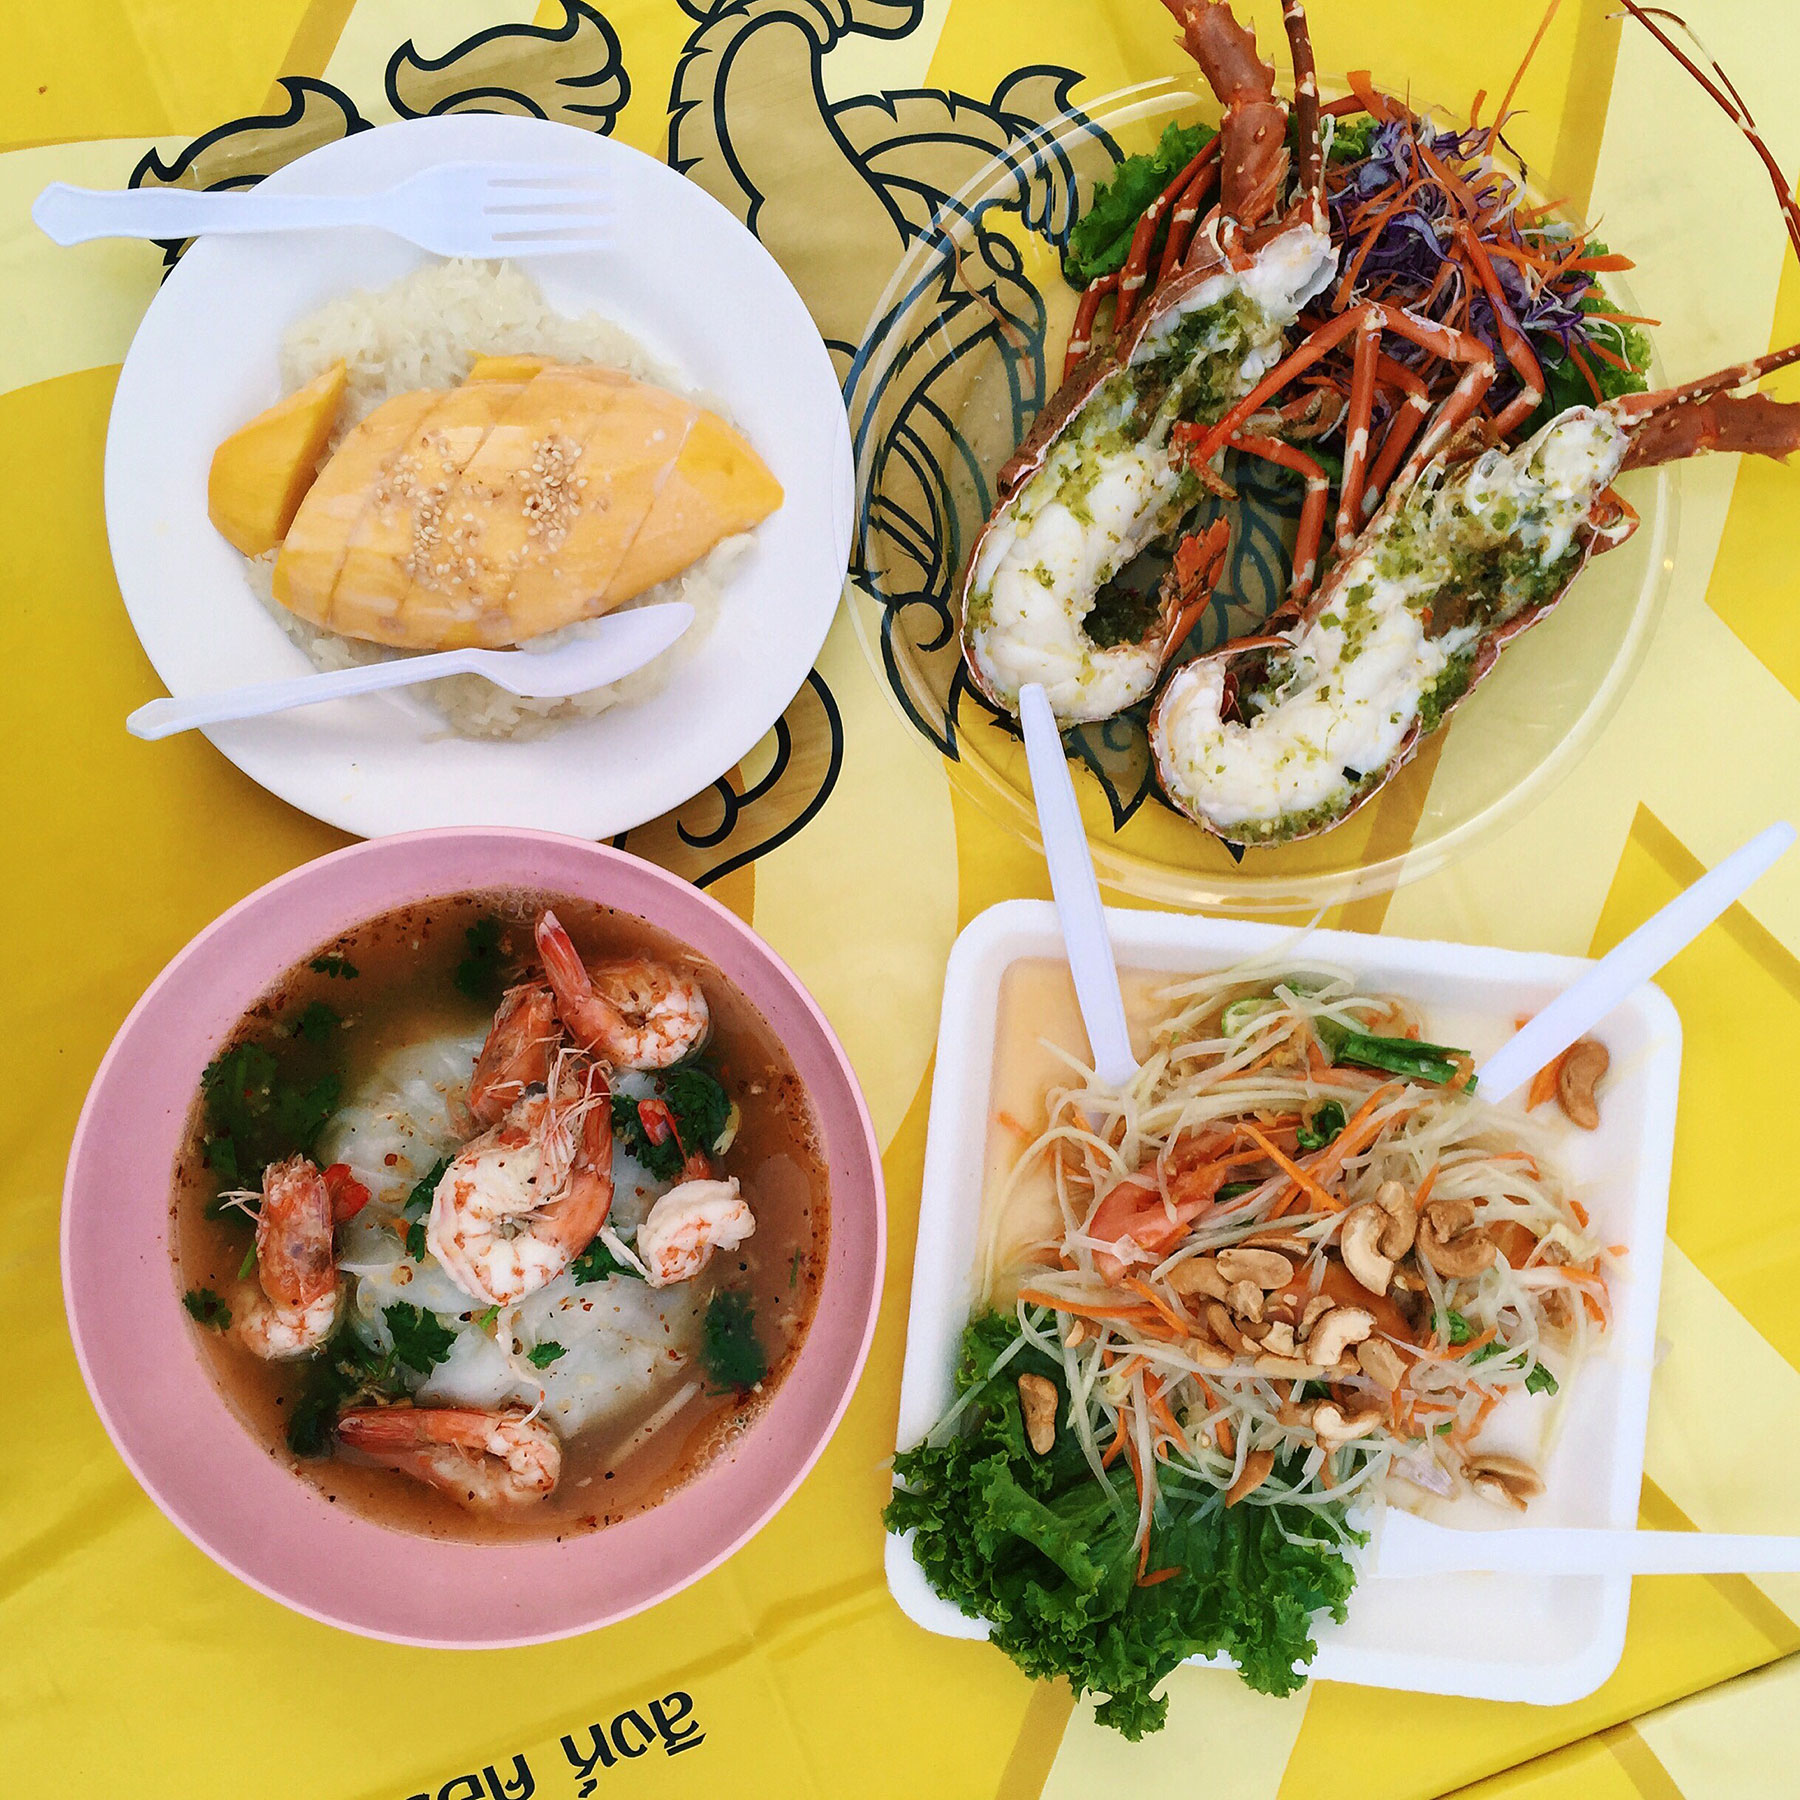 STREET FOOD:  A trip to Thailand would not be complete without getting your fix of delicious street foods. Try amazing street foods on   Khao San Road   in Bangkok, or   Bangla Road   in Phuket!